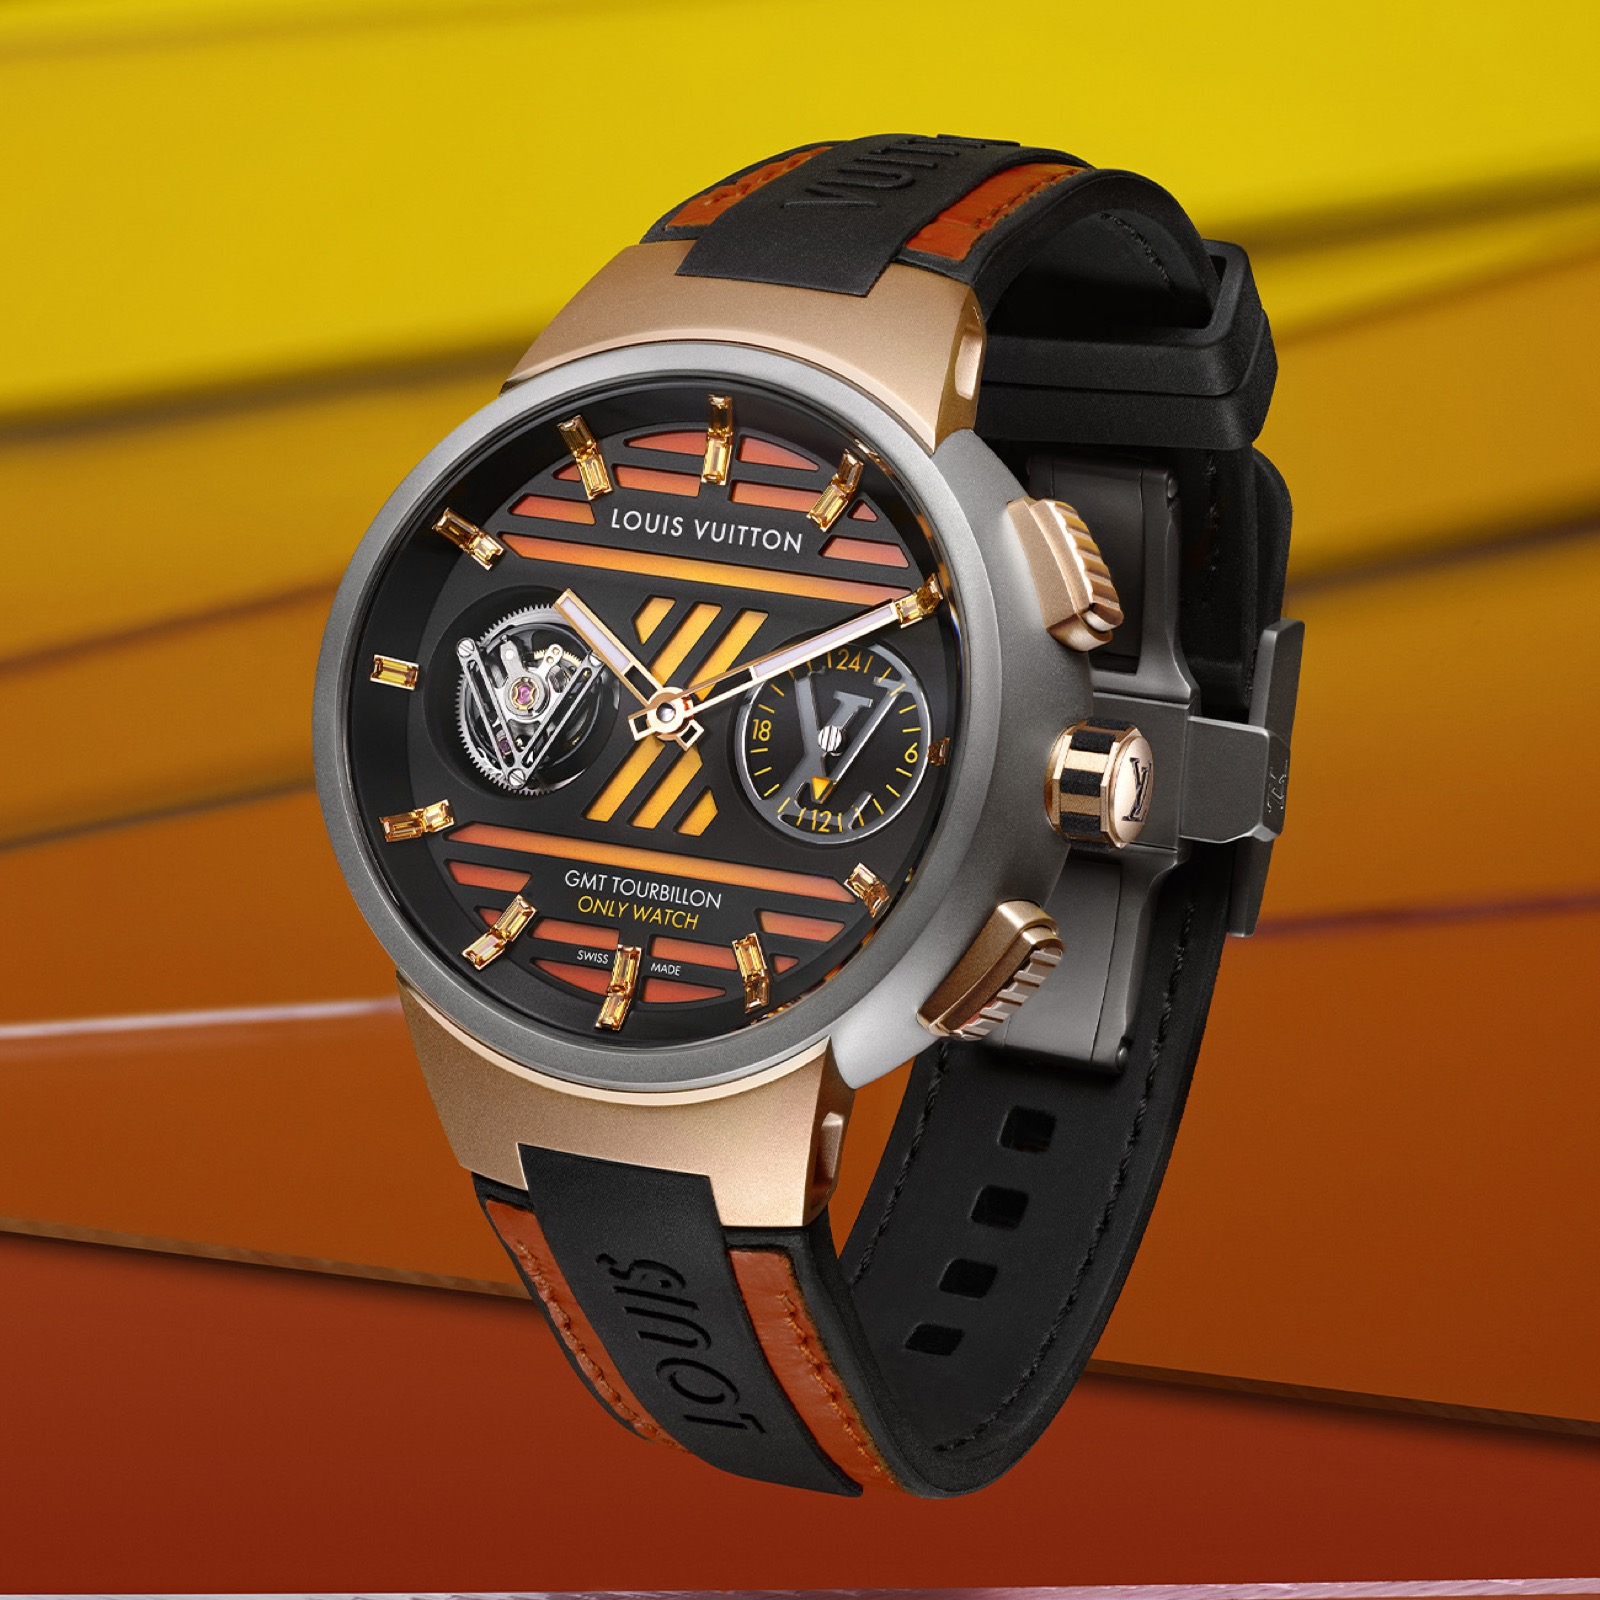 Louis-Vuitton-only-watch-2021